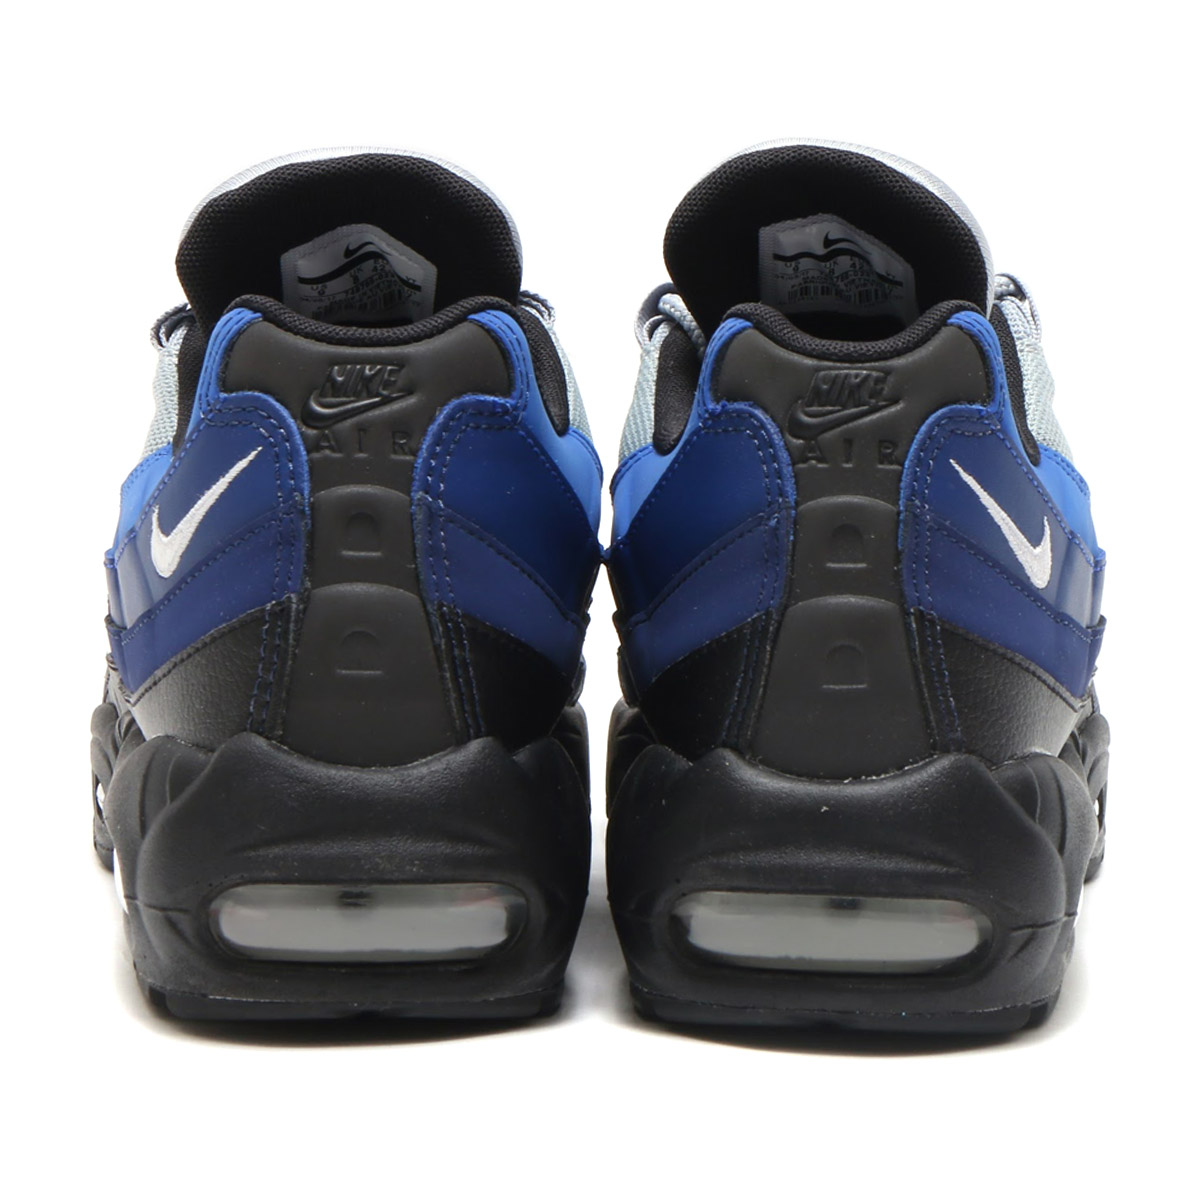 NIKE AIR MAX 95 ESSENTIAL(耐克空气最大95精华)BLACKWHITE BINARY BLUE DEEP ROYAL 17HO I